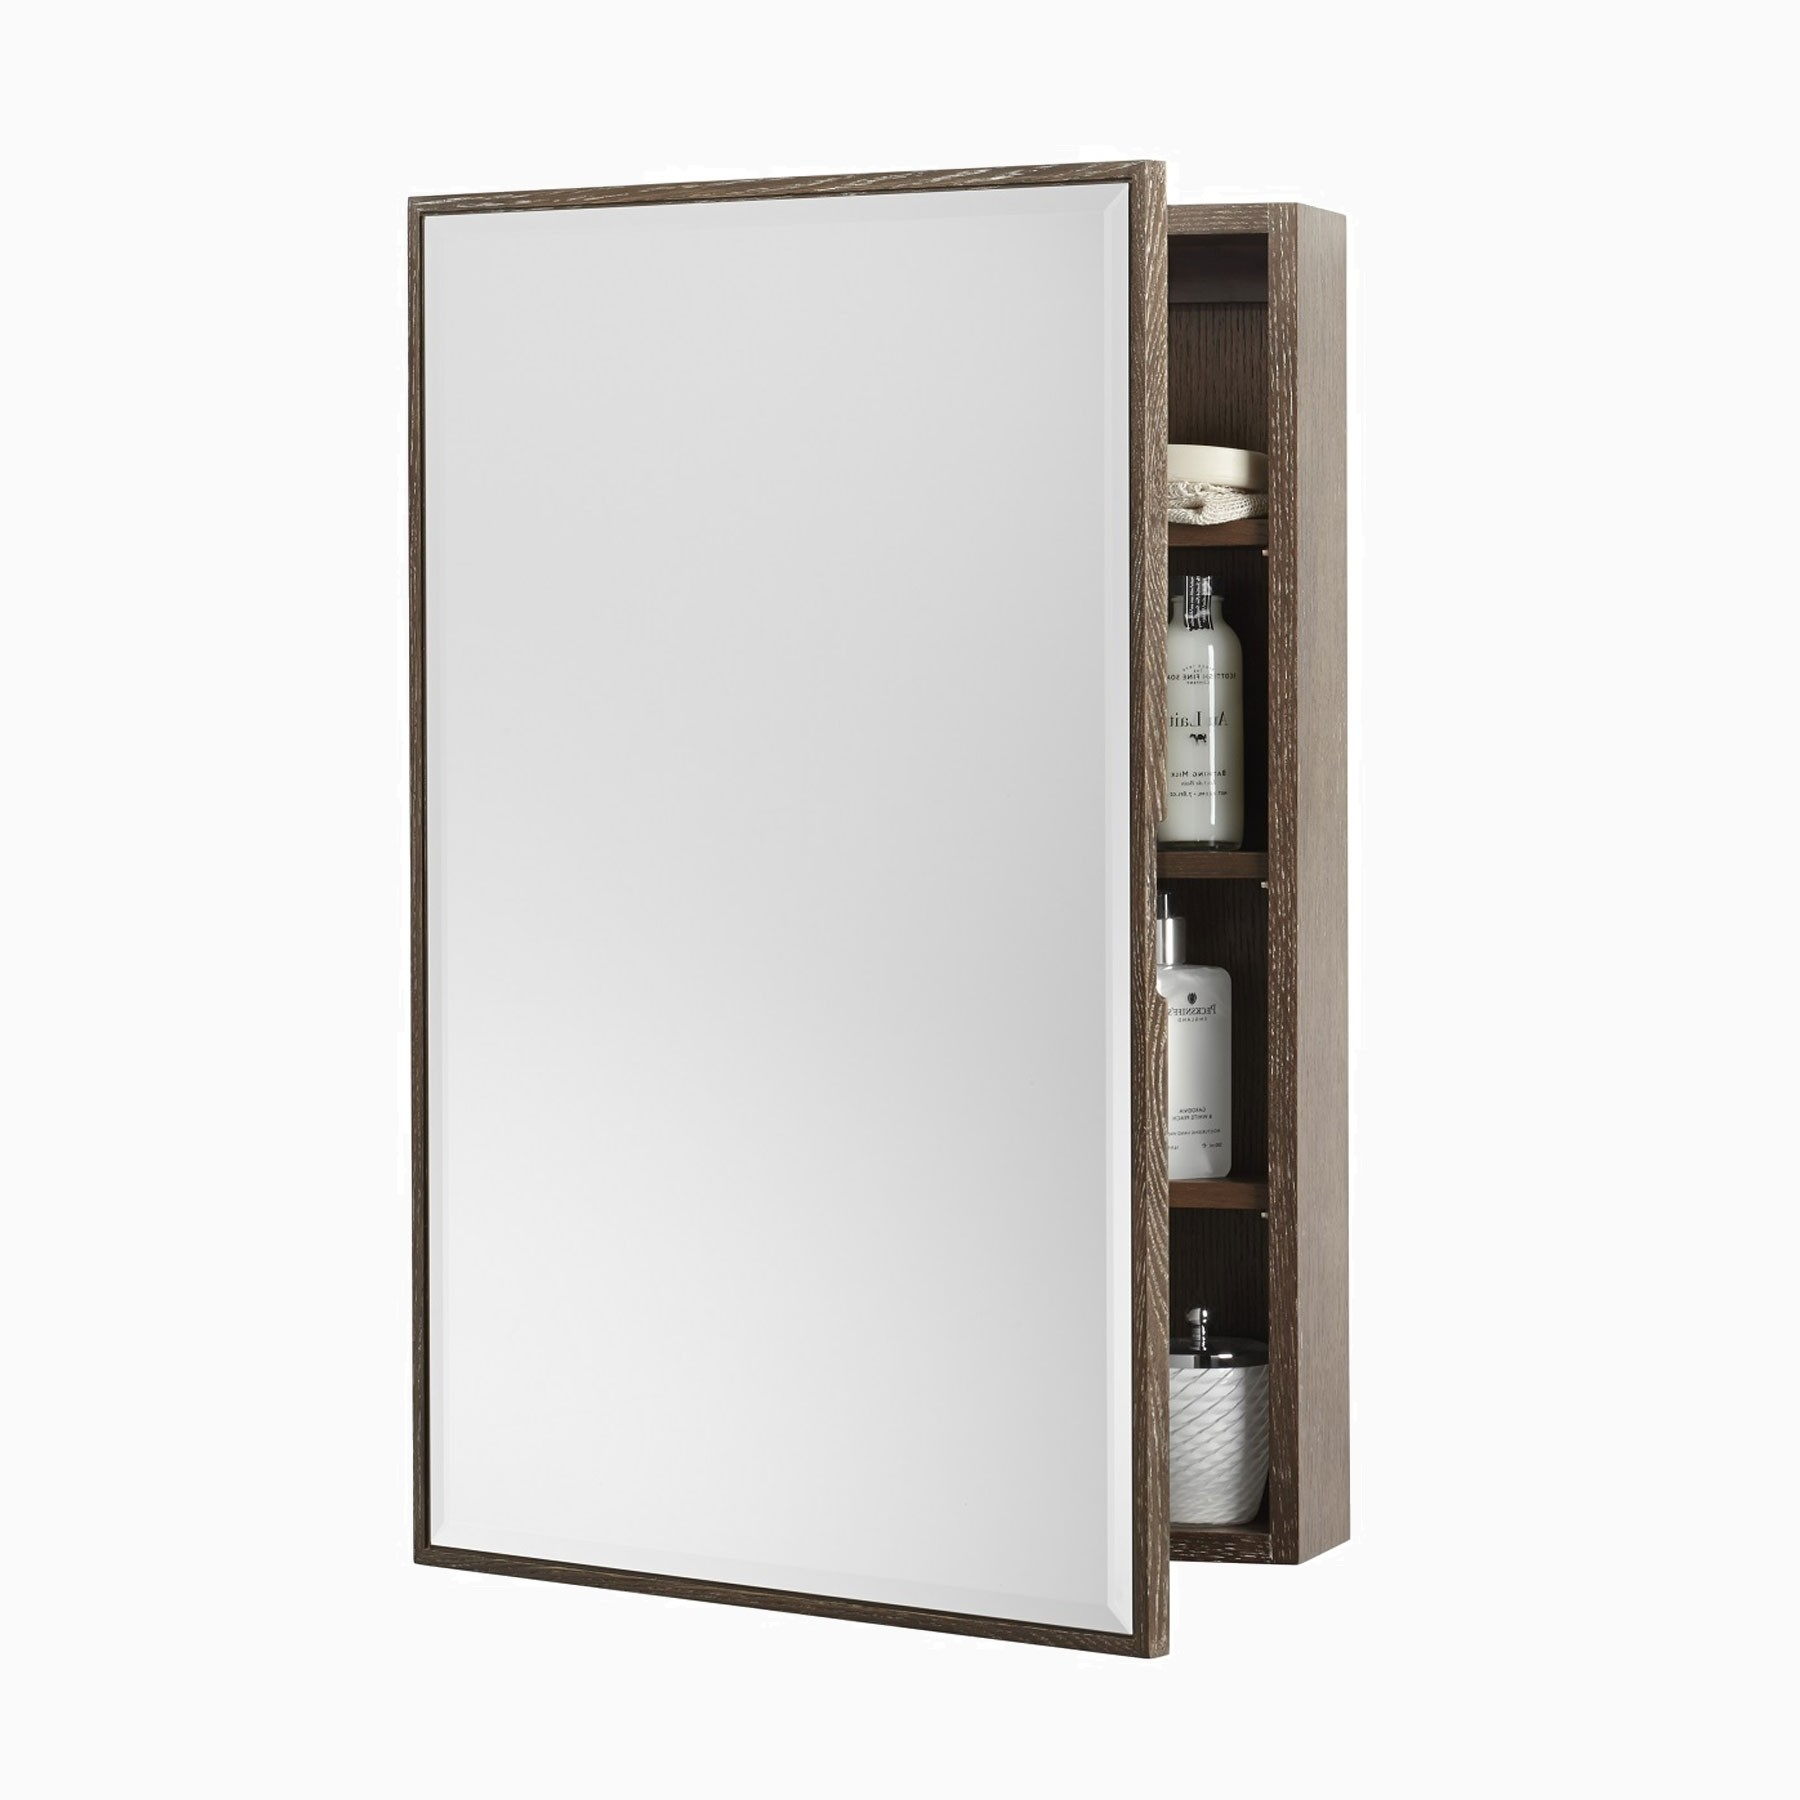 Peter 23 W X 33 H Wood Framed Medicine Cabinet With Beveled Mirror